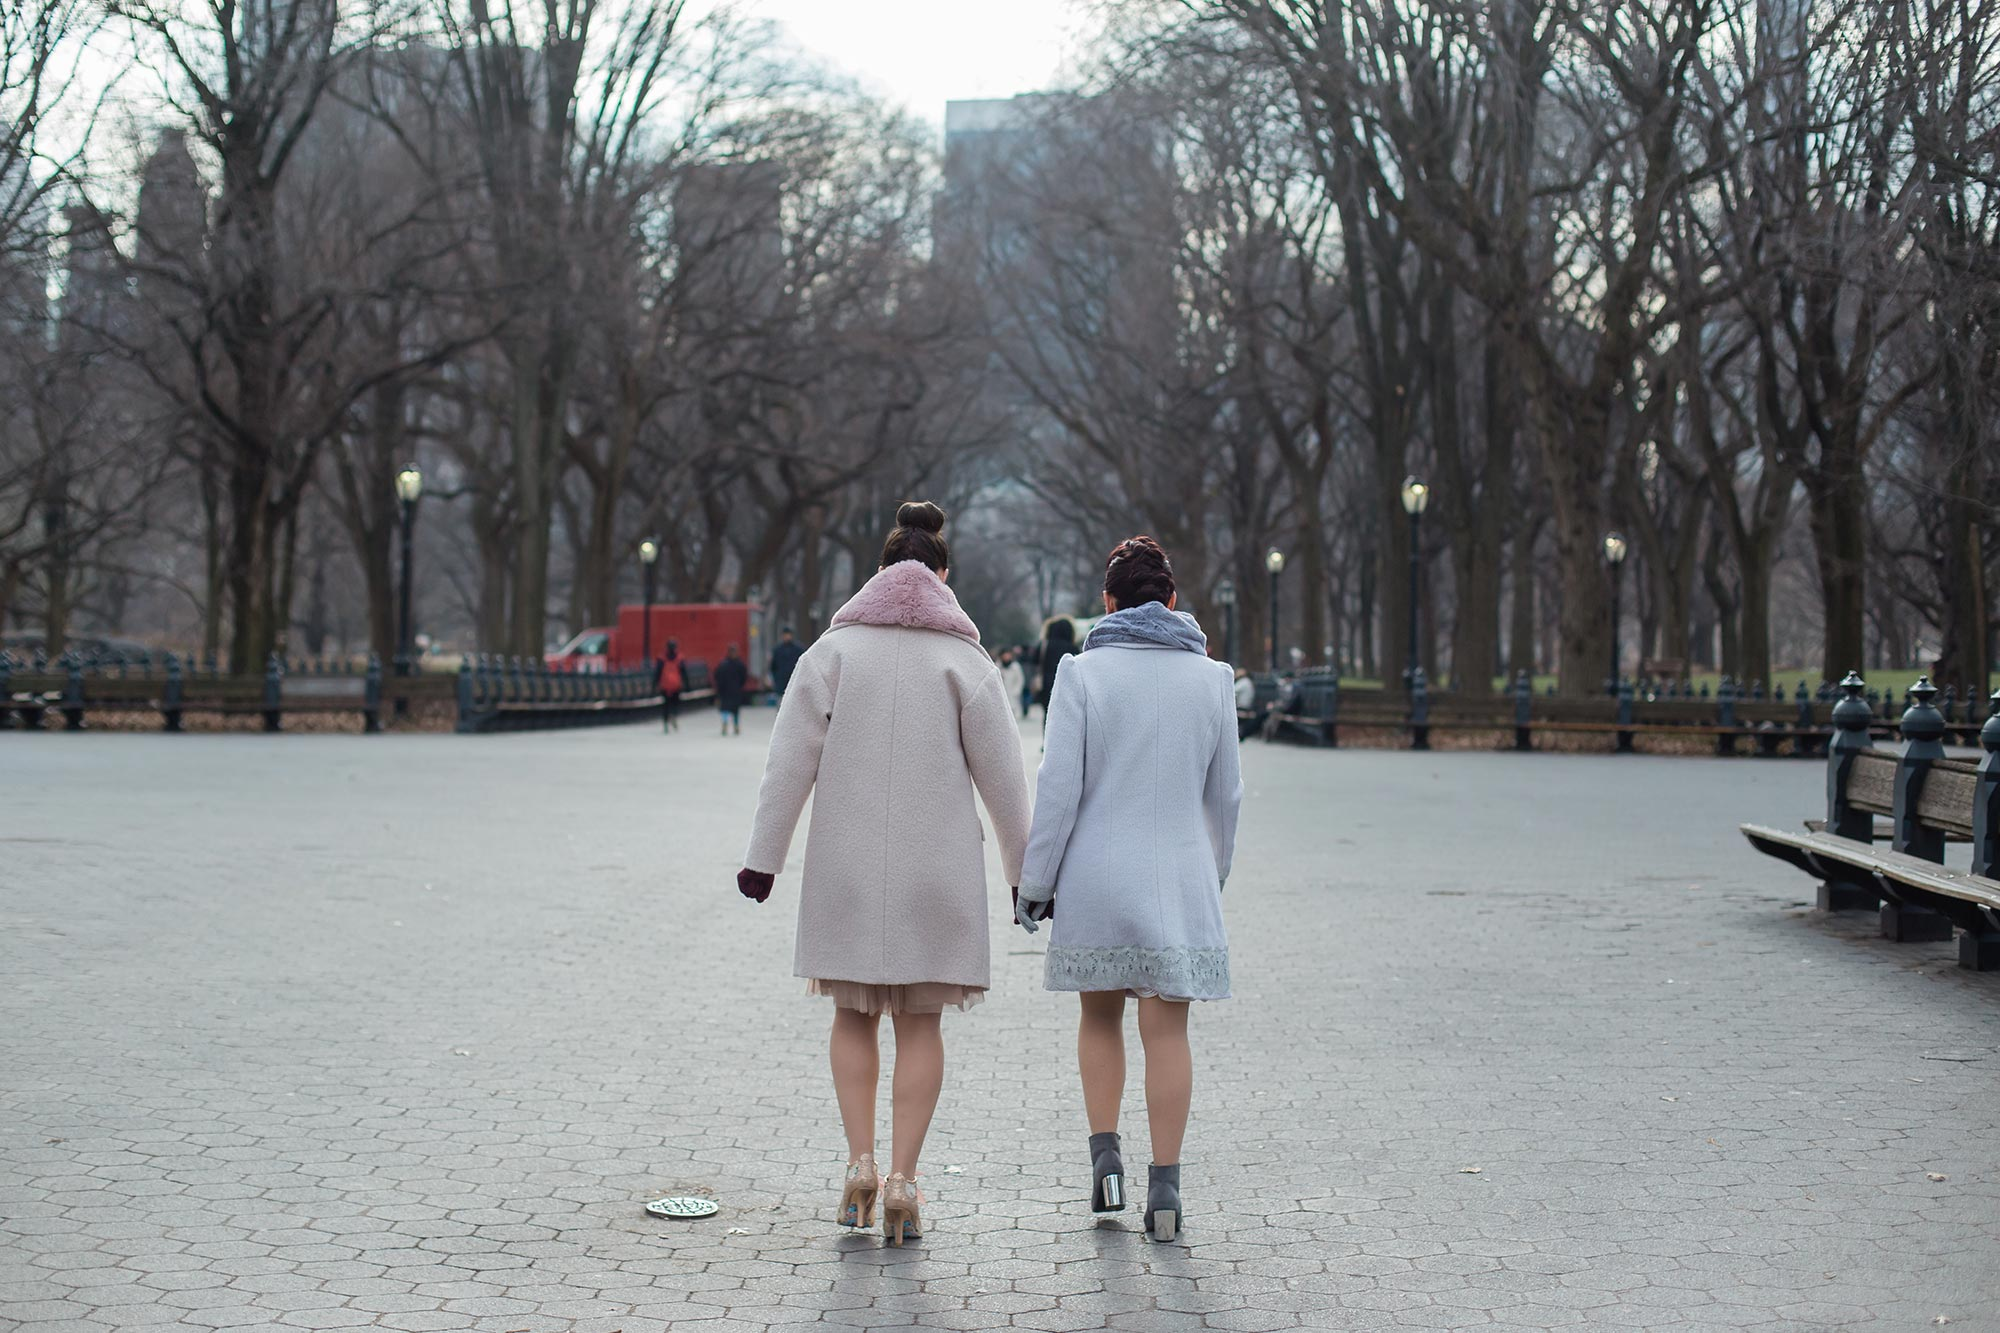 queer irish central park winter elopement kate alison photography couple holding hands walking on path